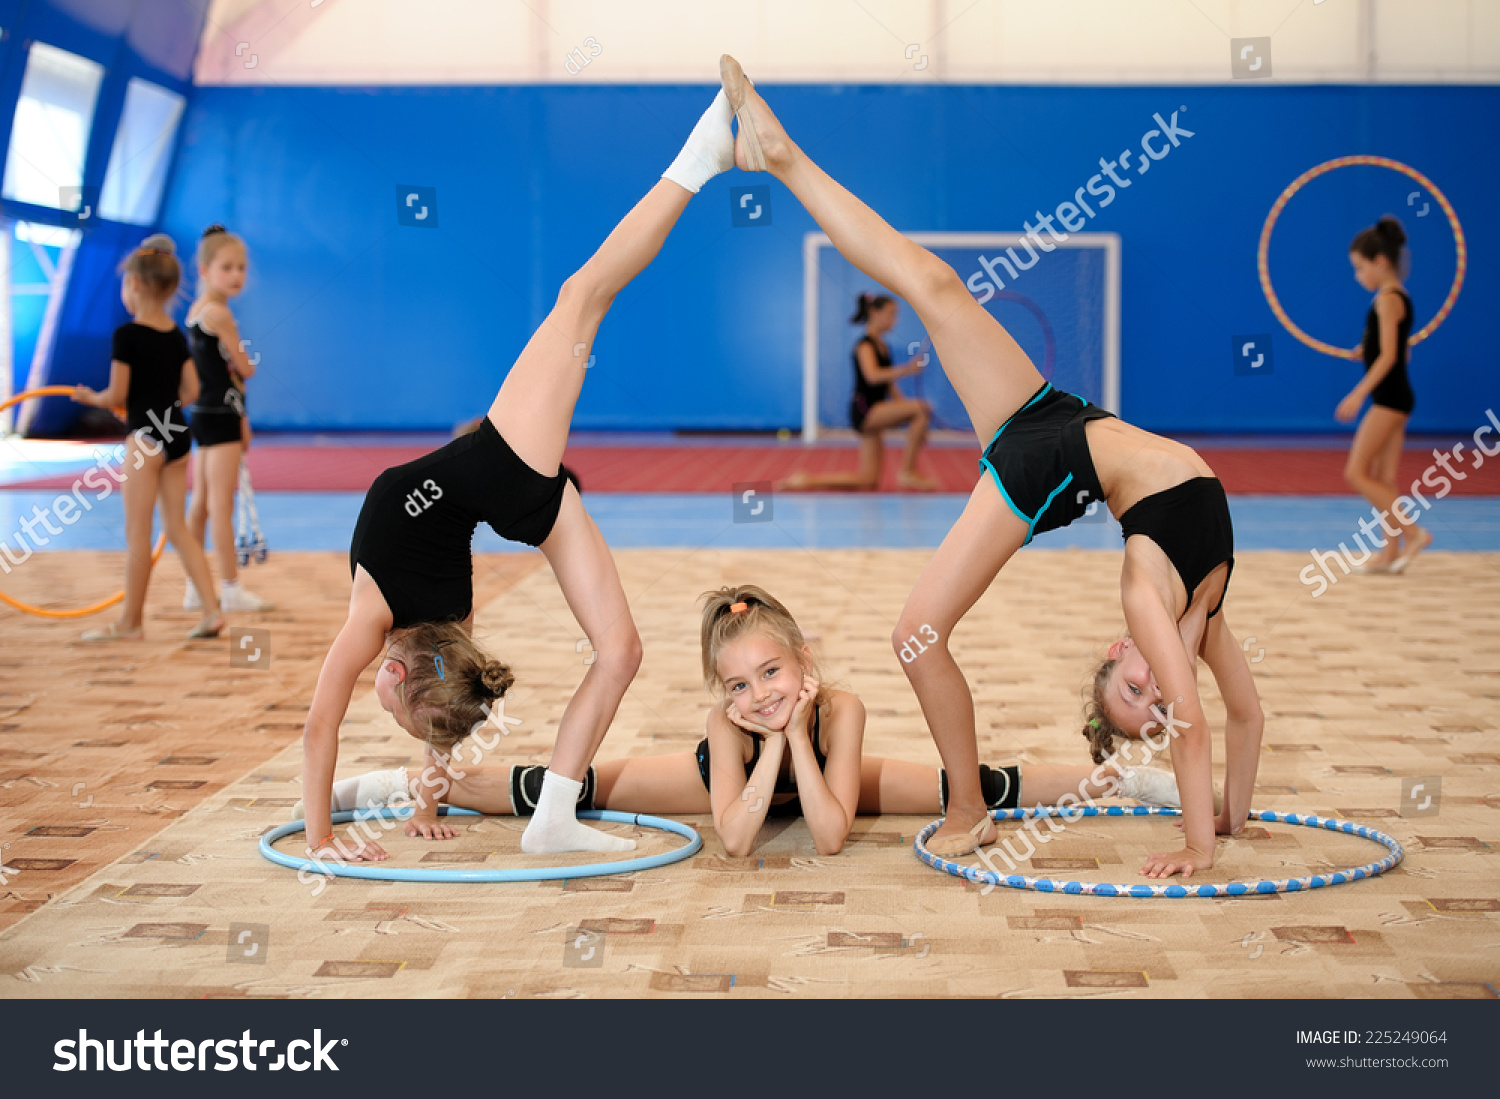 preteen stretch Girl doing leg-split between two ones stretching legs up